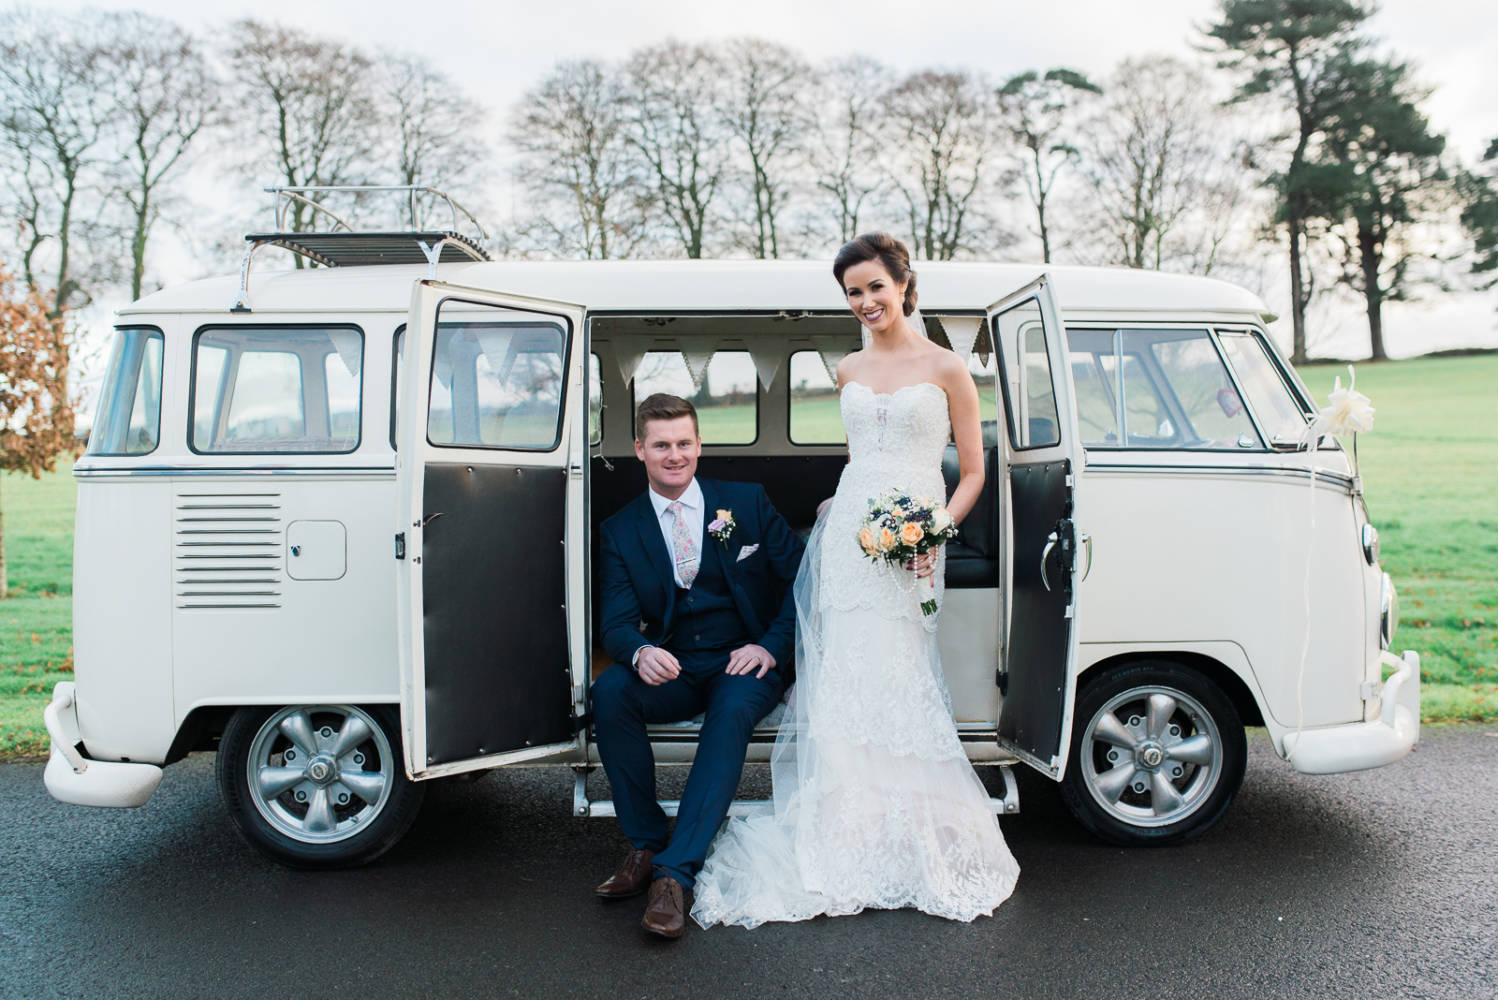 Silke Photography - Ireland Wedding Photographer - 7 Questions to Ask when Hiring a Photographer